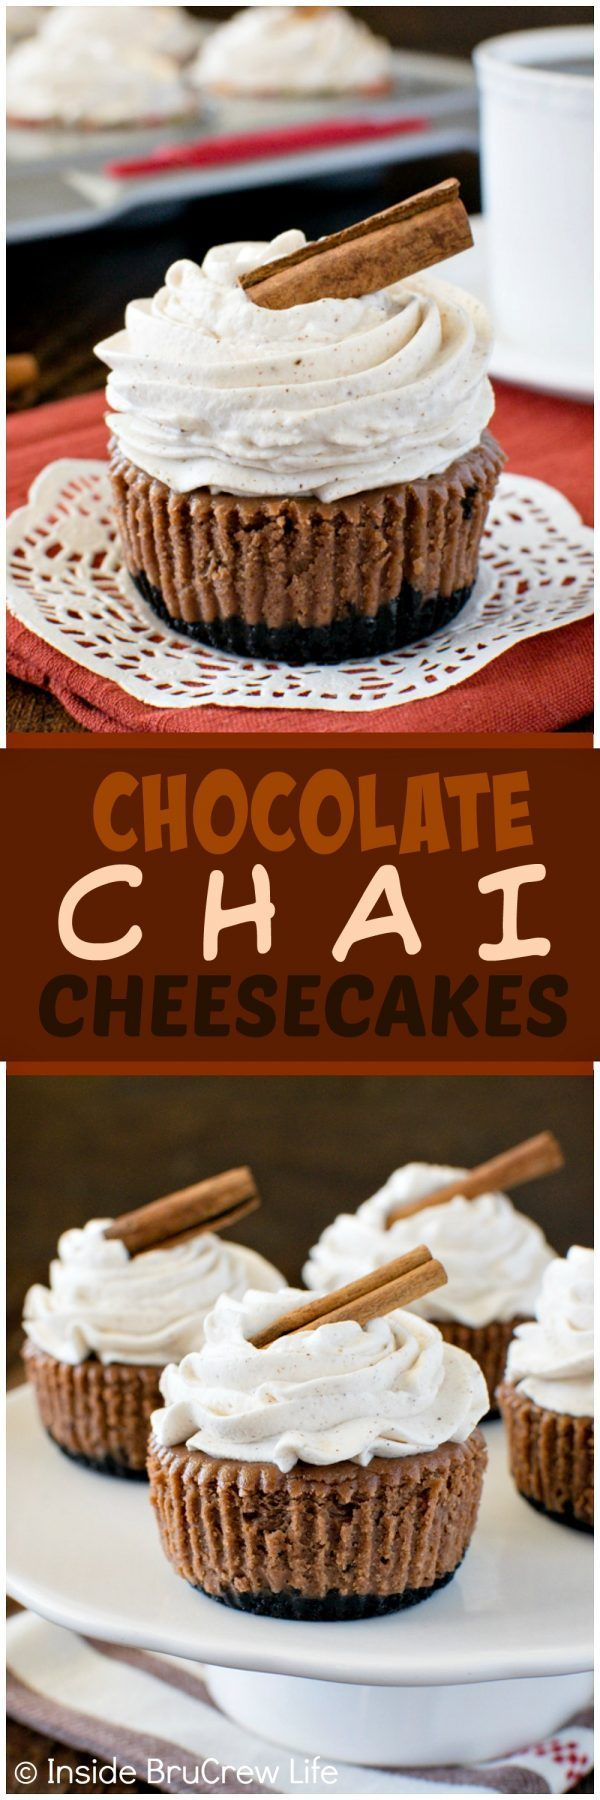 Chocolate Chai Cheesecakes - a chocolate cookie crust & a homemade spice whipped creams adds so much flavor to these mini cheesecakes. Great dessert recipe for fall parties!